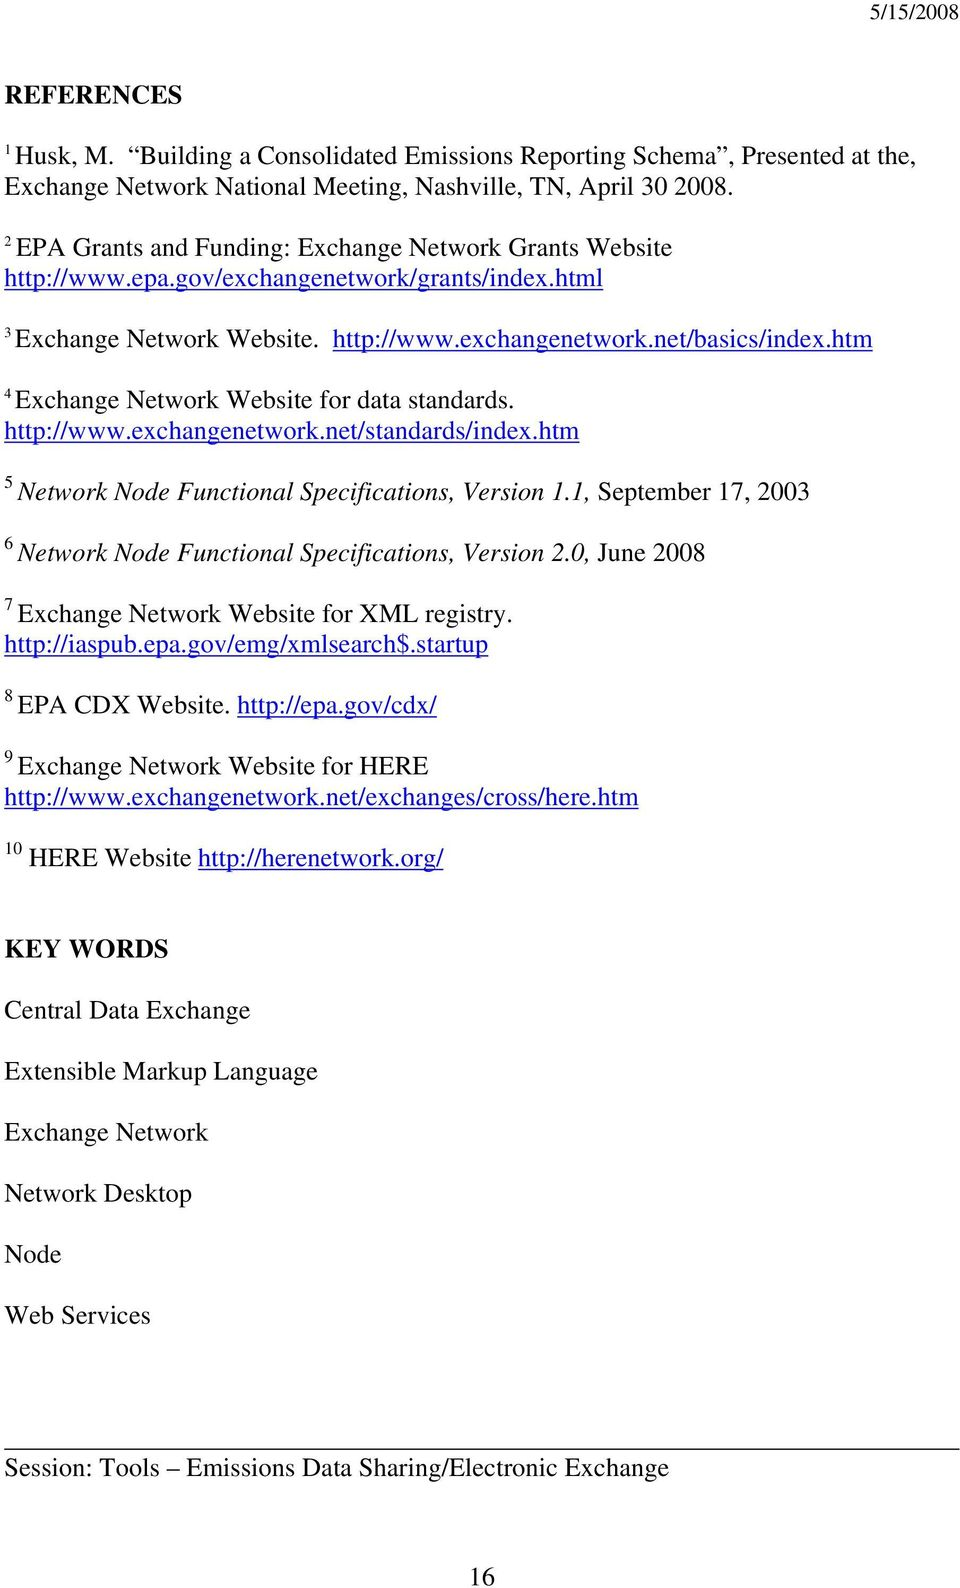 htm 4 Exchange Network Website for data standards. http://www.exchangenetwork.net/standards/index.htm 5 Network Node Functional Specifications, Version 1.